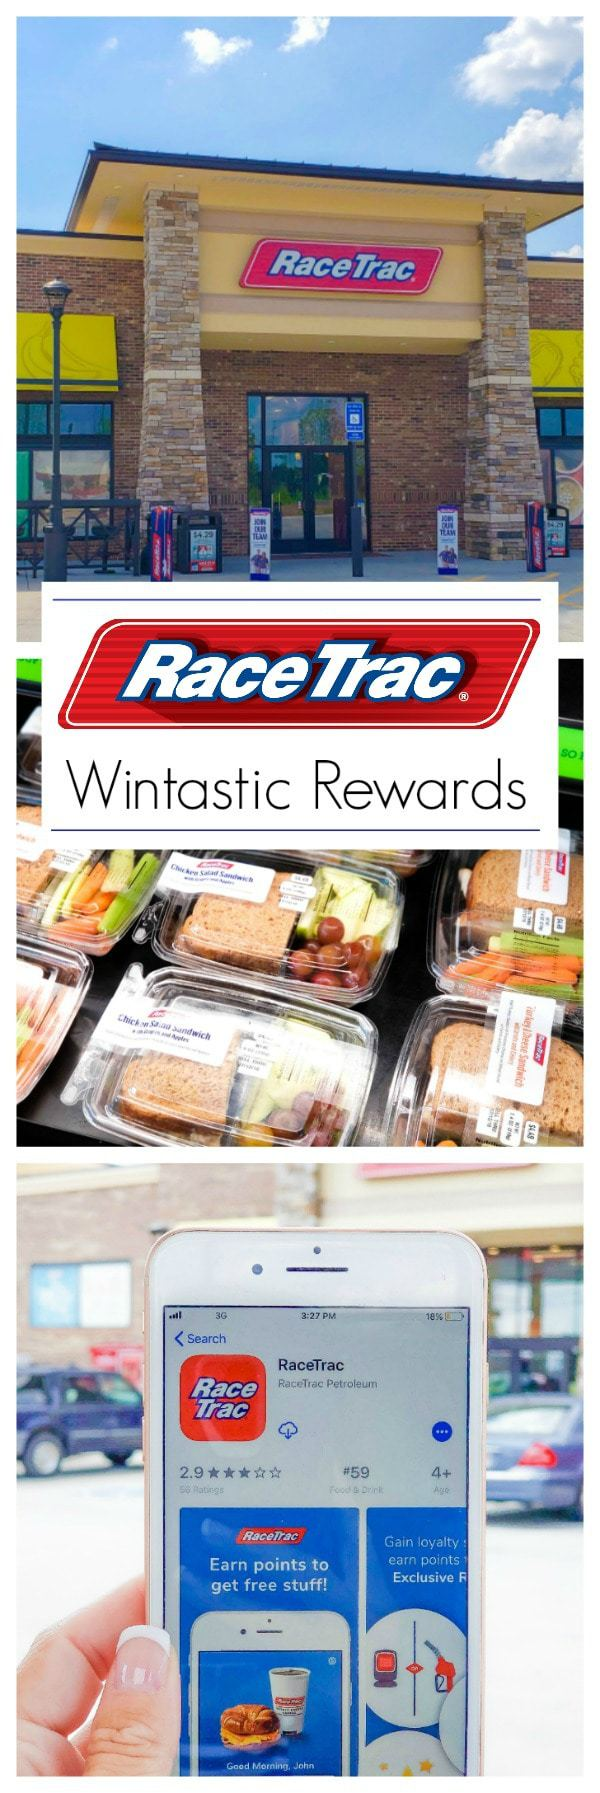 #ad No matter what the cravings, RaceTrac has you covered! Don't forget to download the Wintastic Rewards app to make certain that you're entering yourself every time you purchase an item! All you have to do is literally download, purchase, scan and win. It's just that easy! #RaceTrac #WintasticRewards